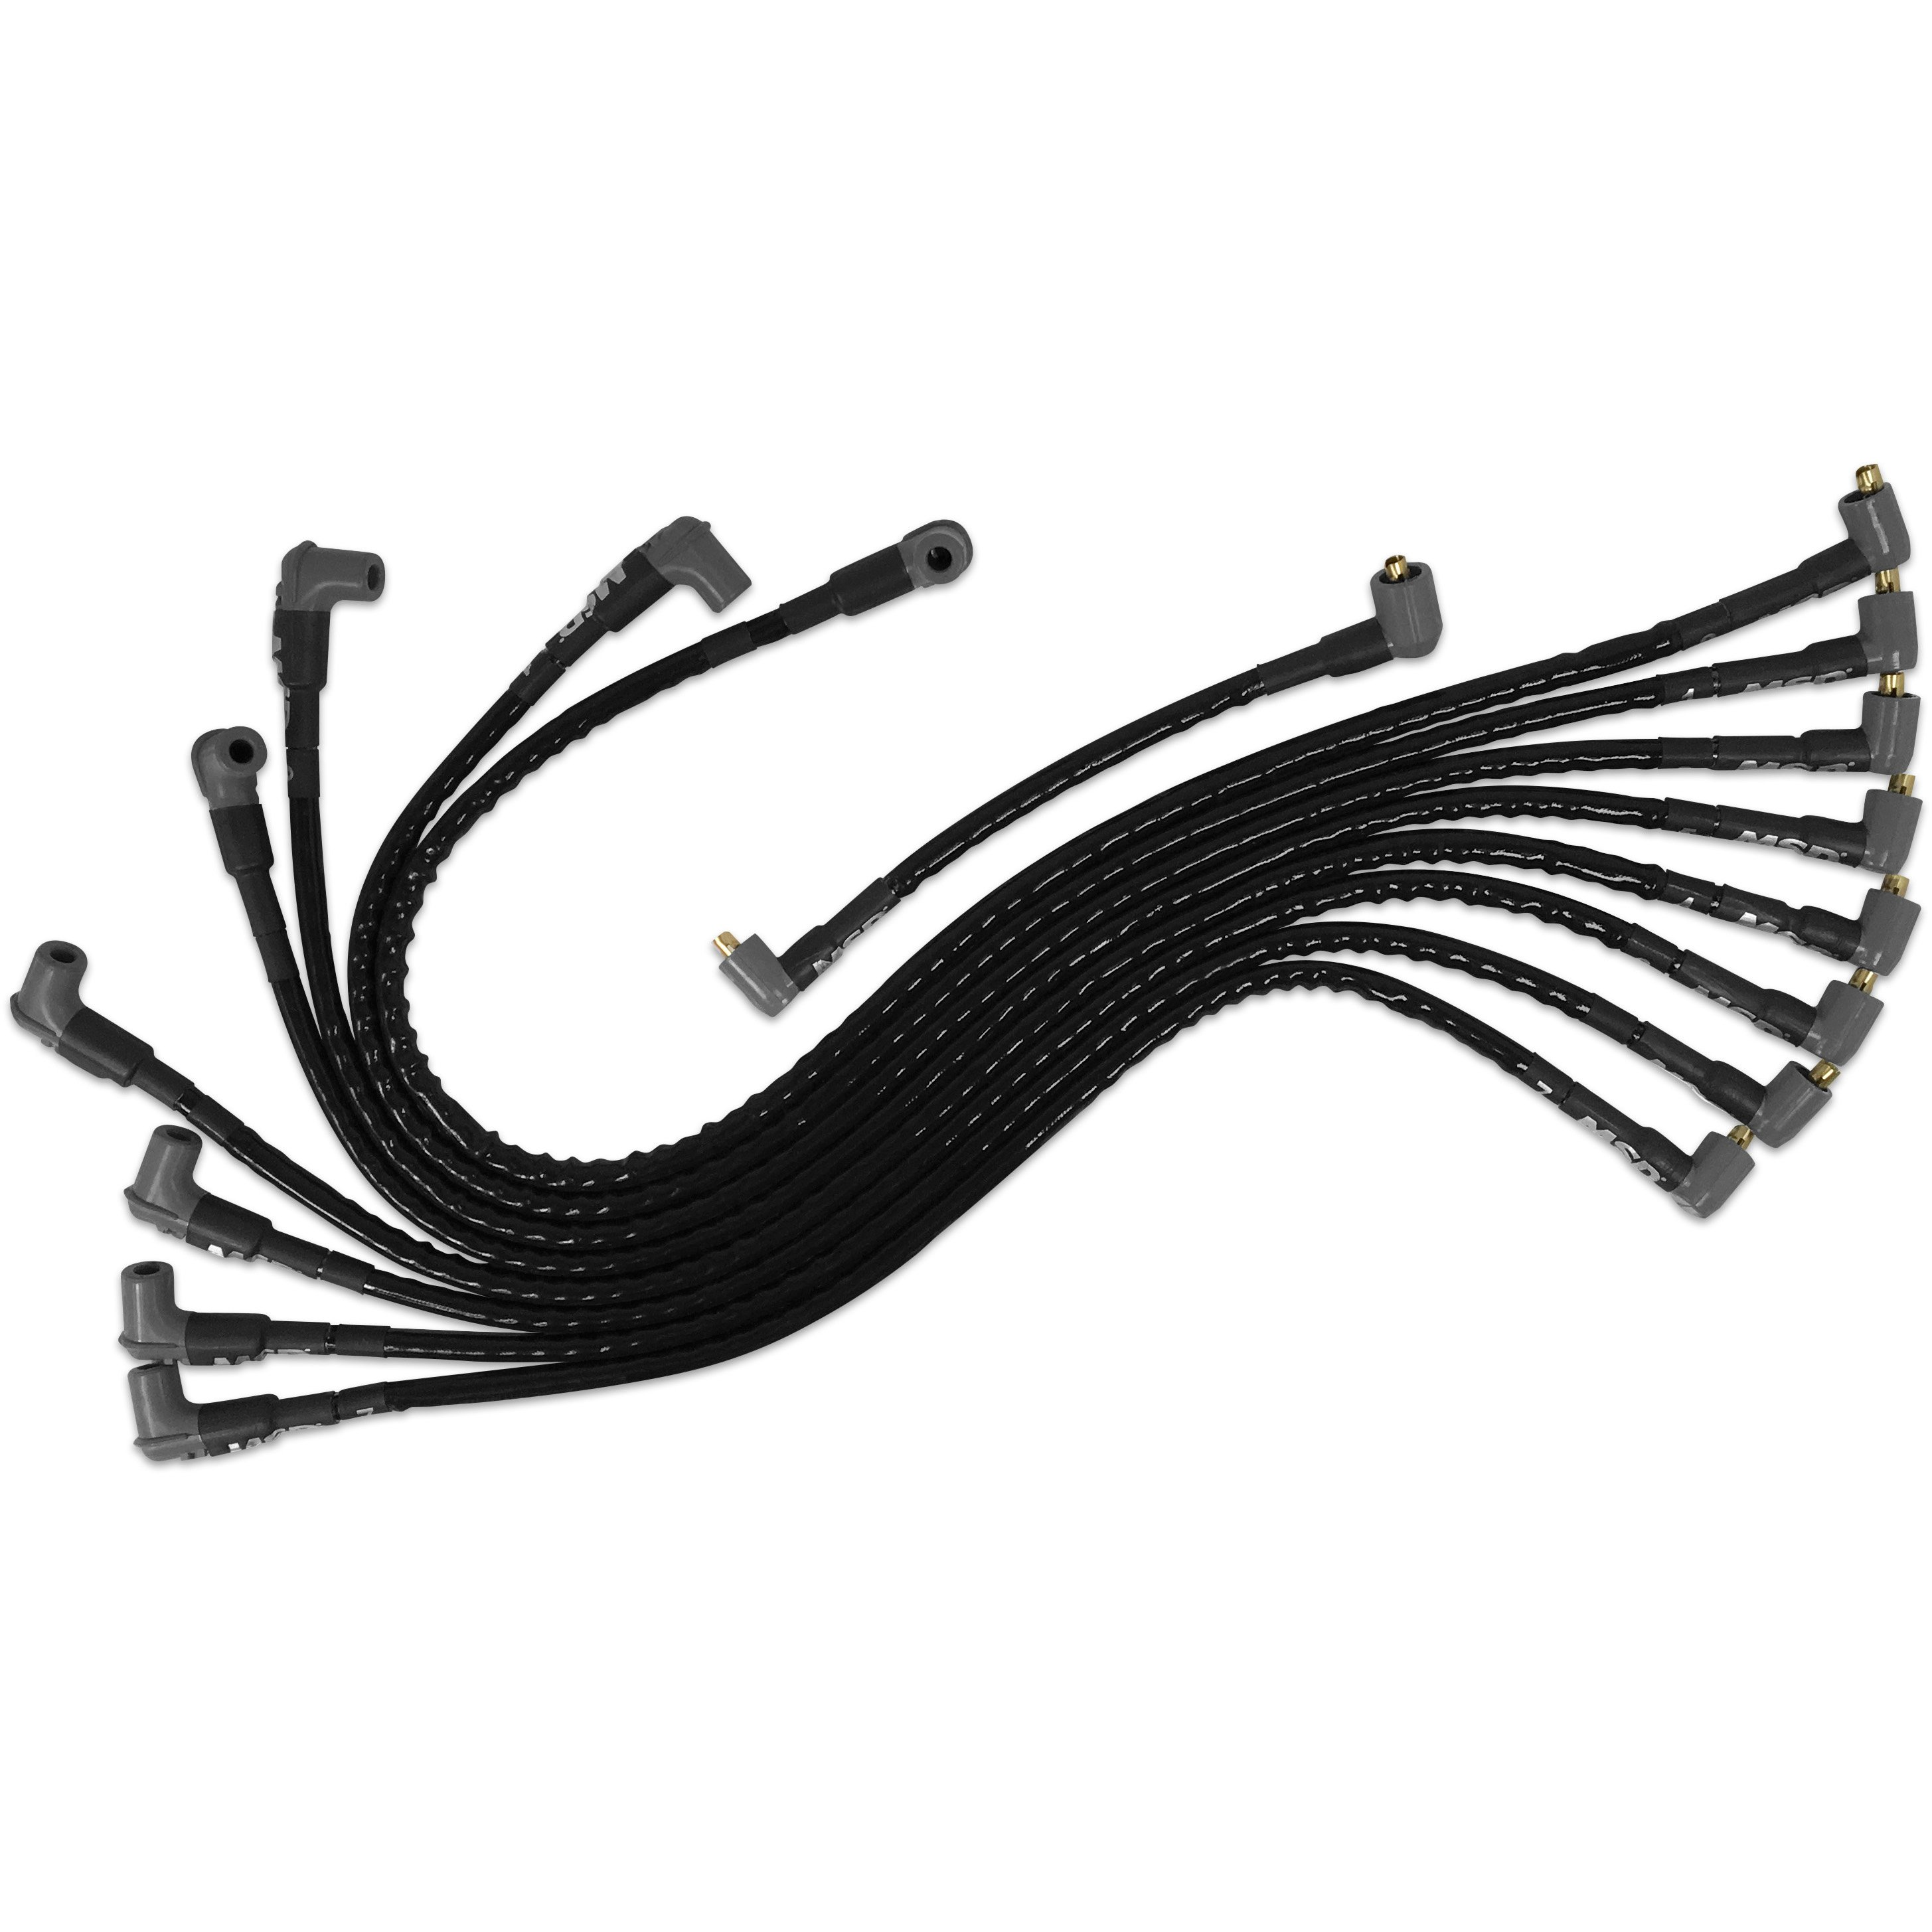 msd 31591 sleeved spark plug wires for sbc under exhaust  socket